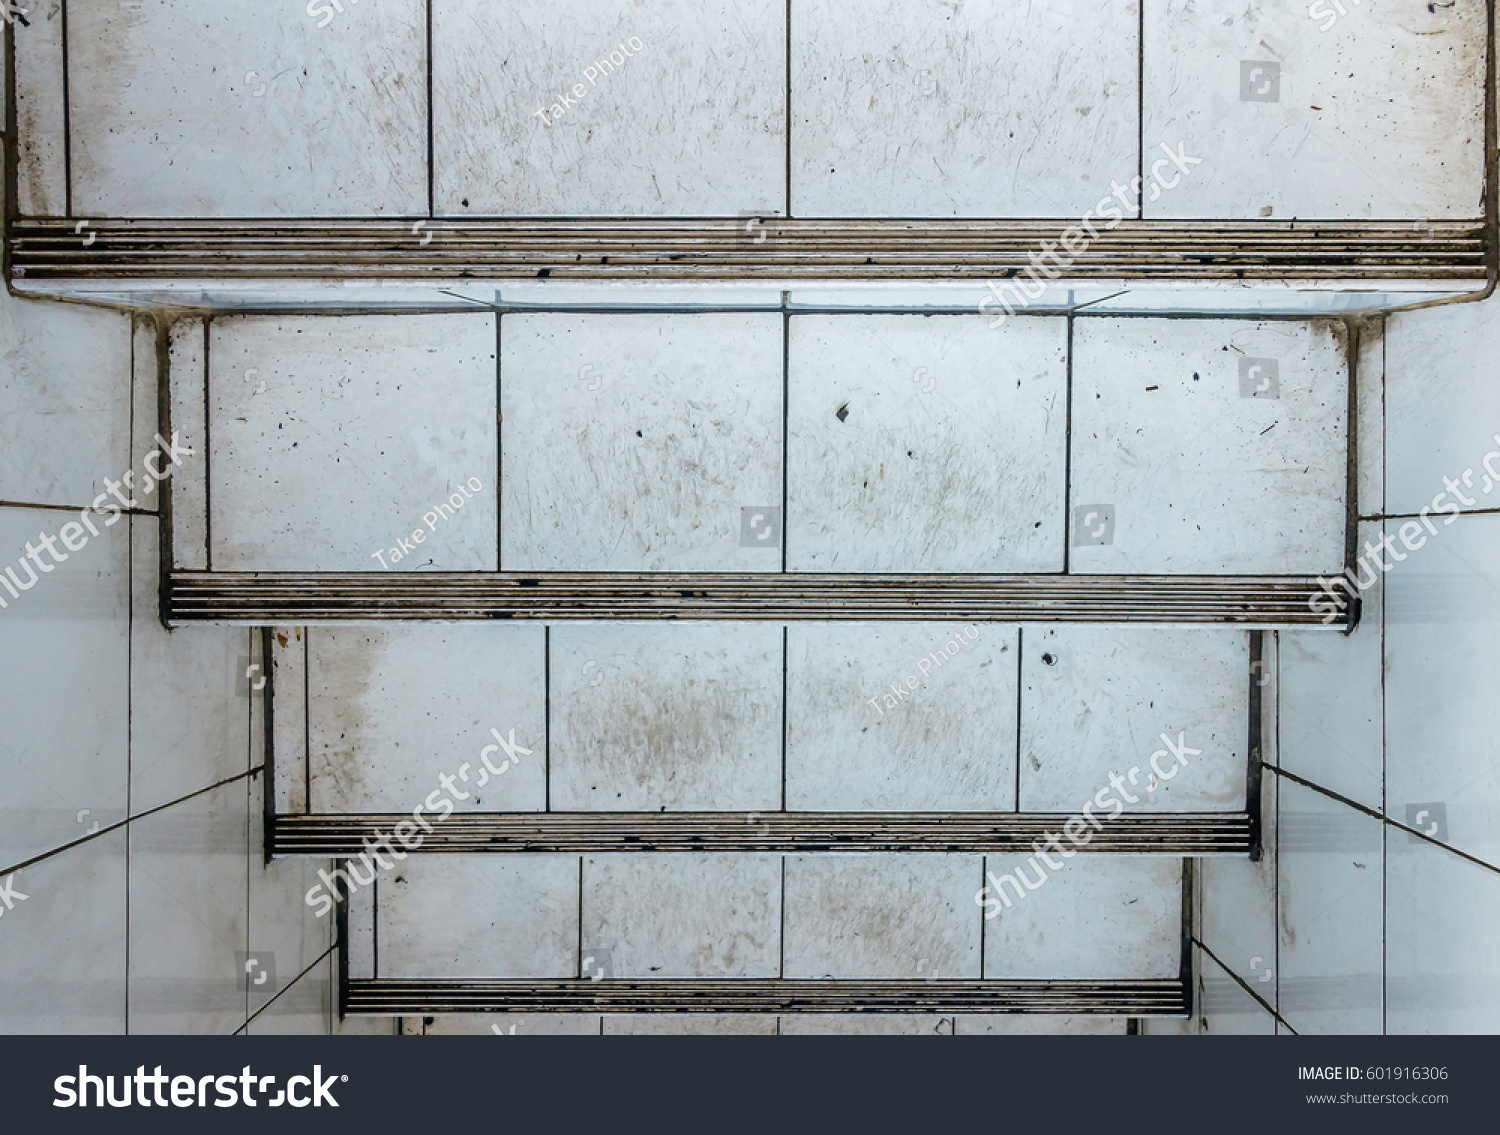 Old Stairs Underground Old Tiled Wall Stock Photo & Image (Royalty ...